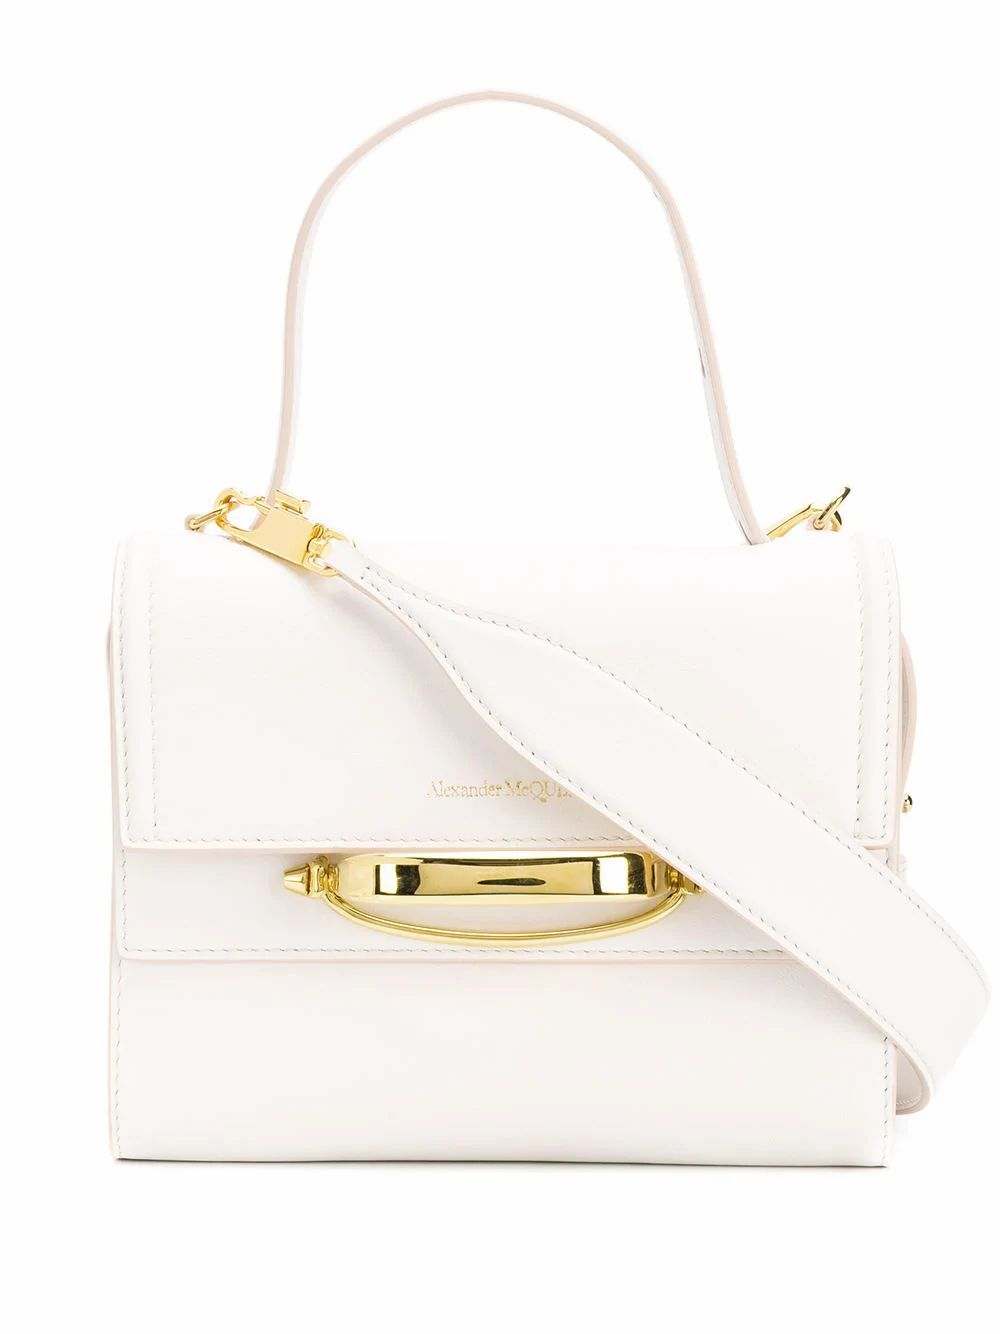 ALEXANDER MCQUEEN WOMEN'S 619746D780T9006 WHITE LEATHER HANDBAG